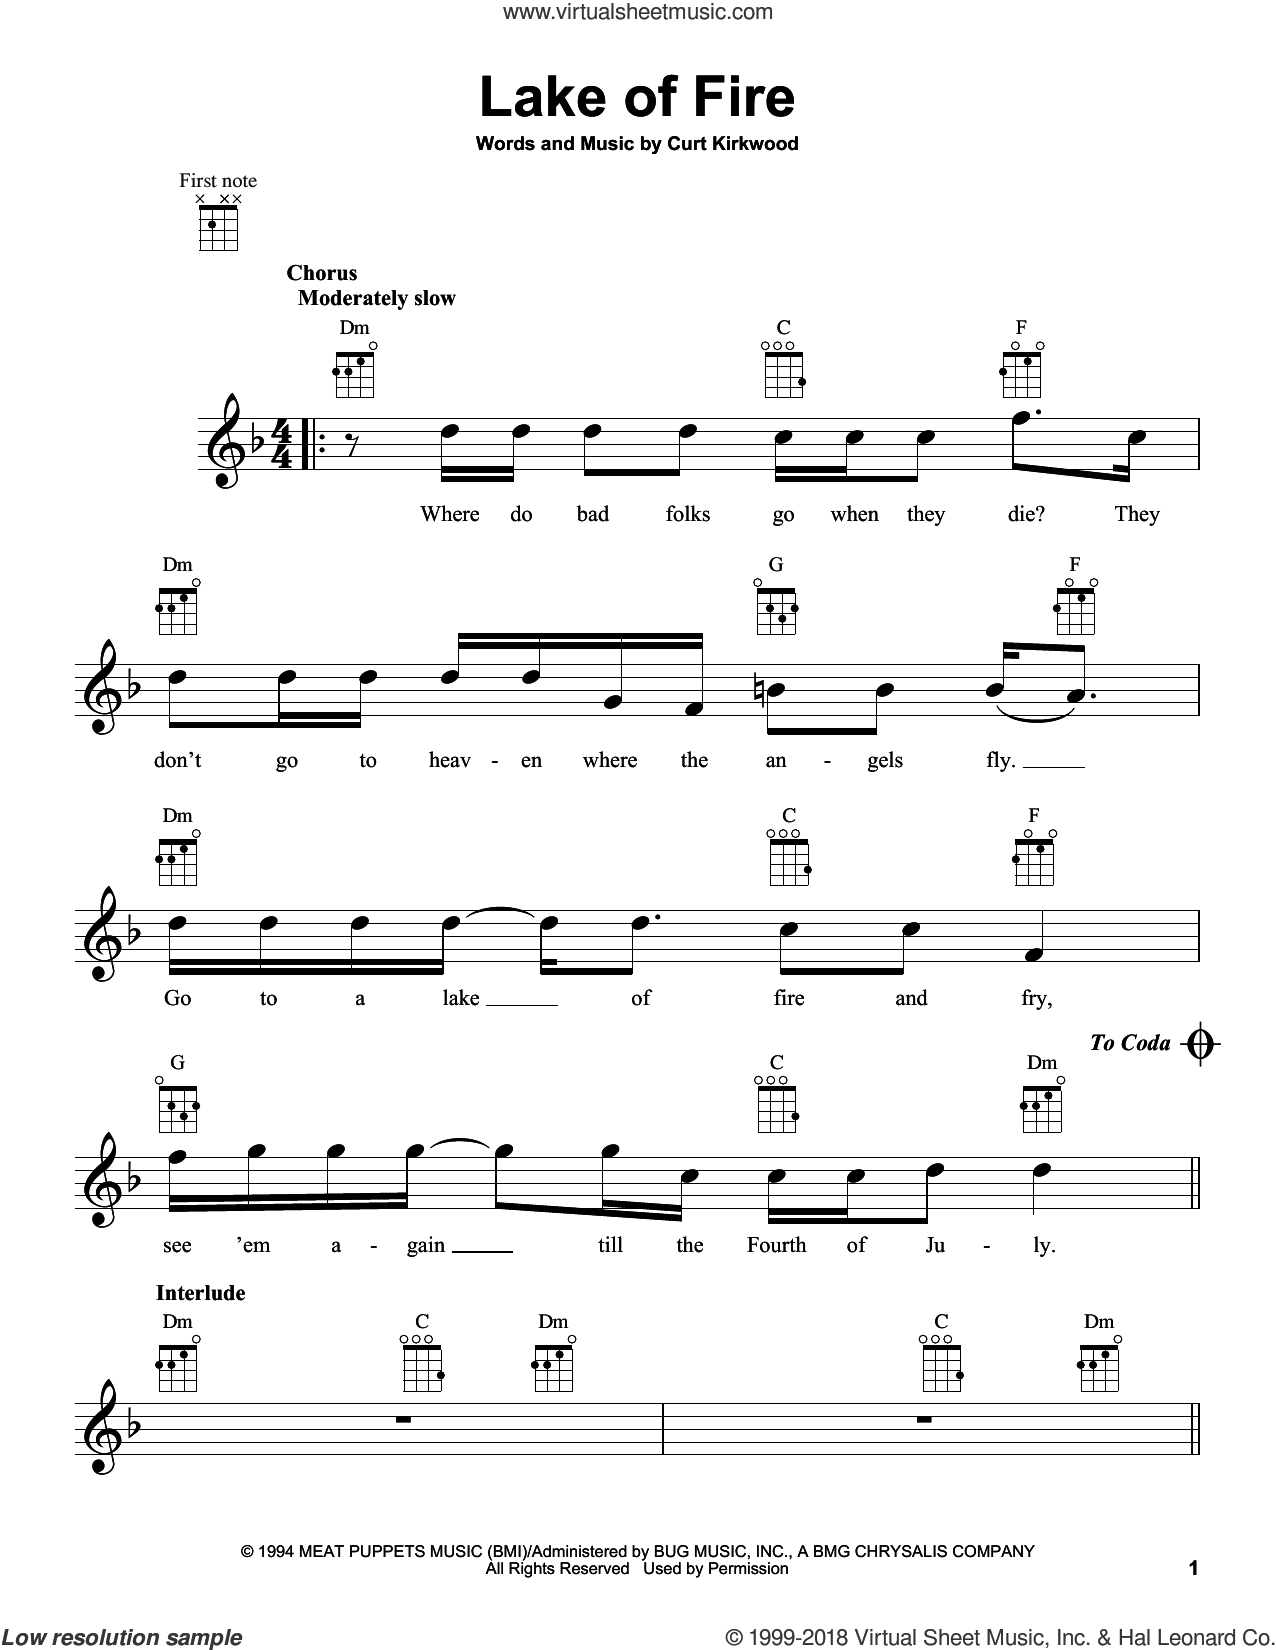 Lake Of Fire sheet music for ukulele by Nirvana and Curt Kirkwood, intermediate skill level